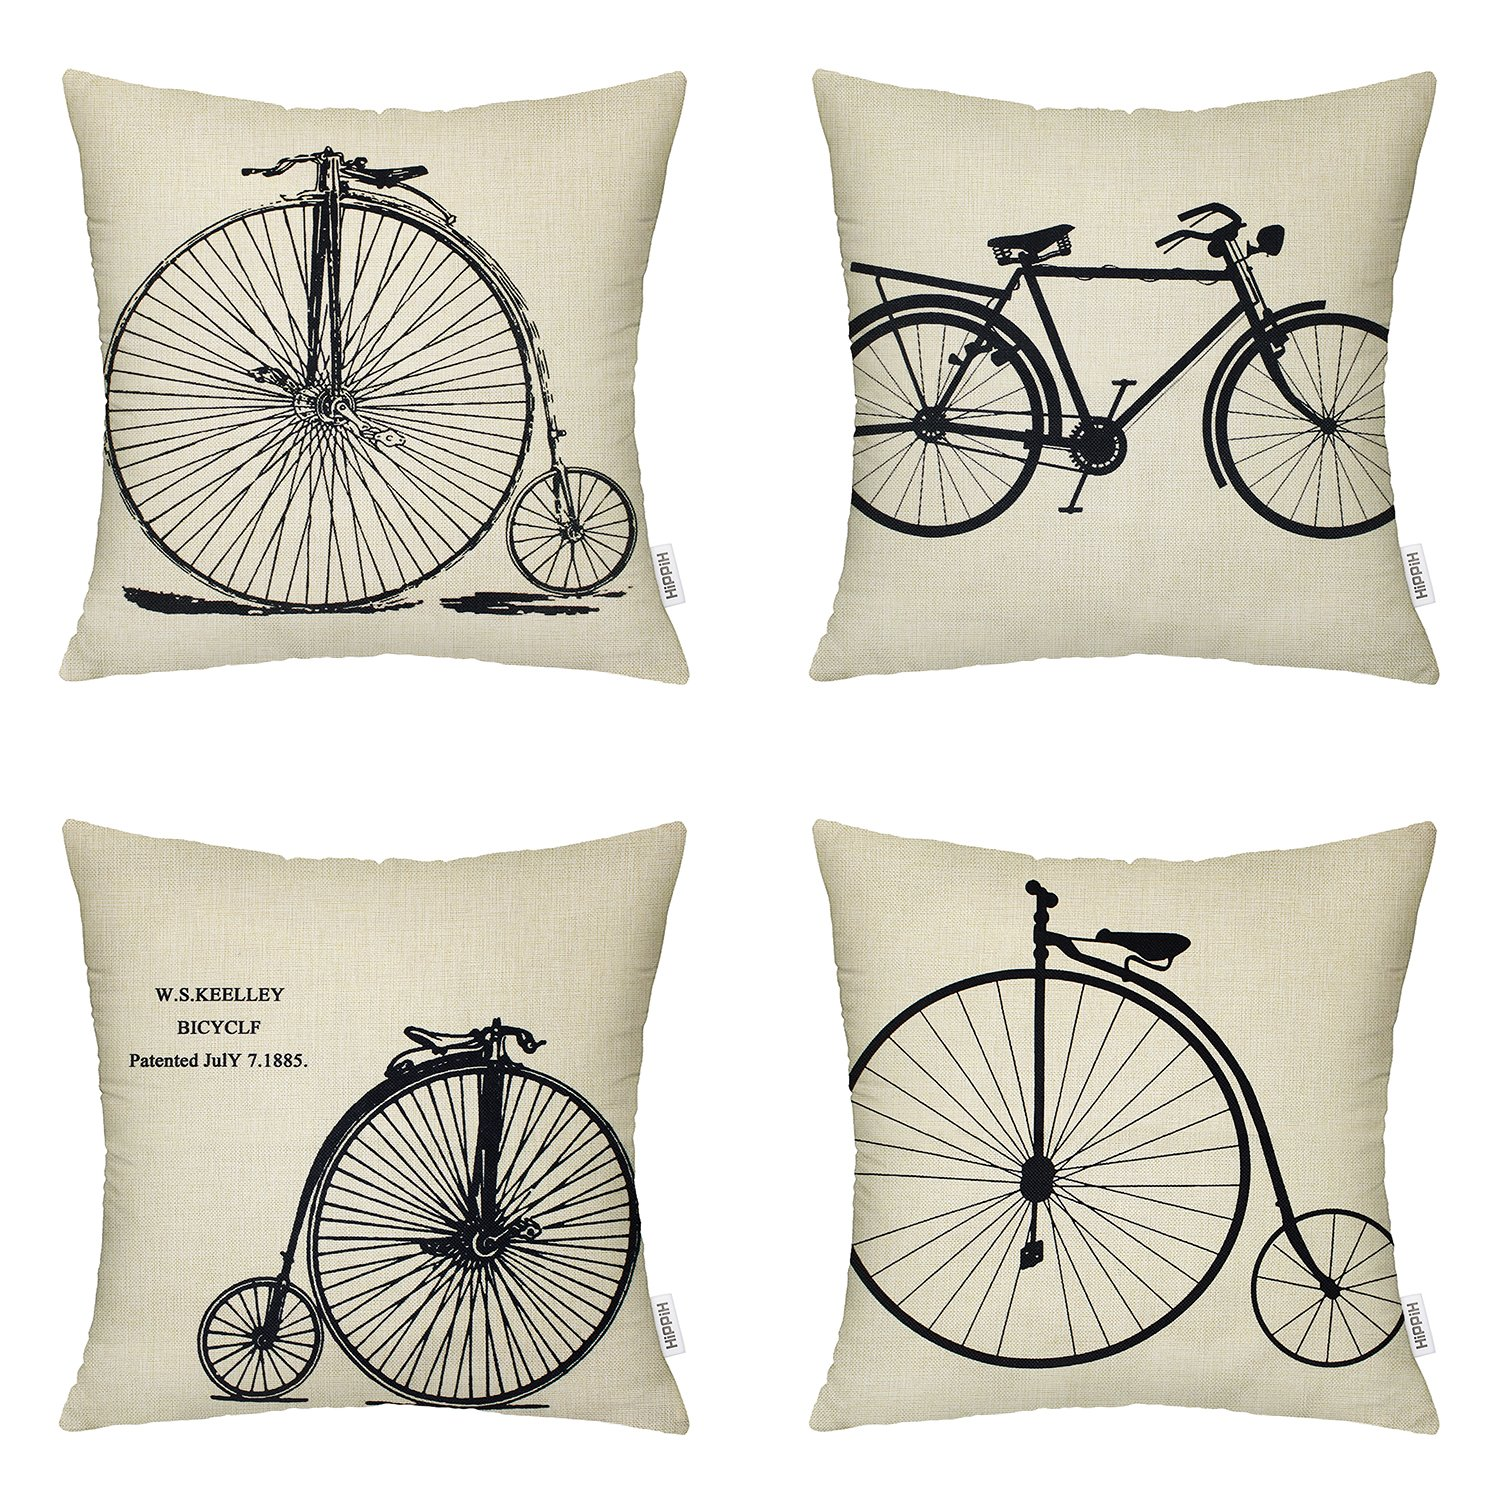 HIPPIH 18 X 18 Inch Pillow Cover(Set of 4) Linen Sofa Home Decor Design Cotton Throw Pillow Case Cushion, 4 Bikes